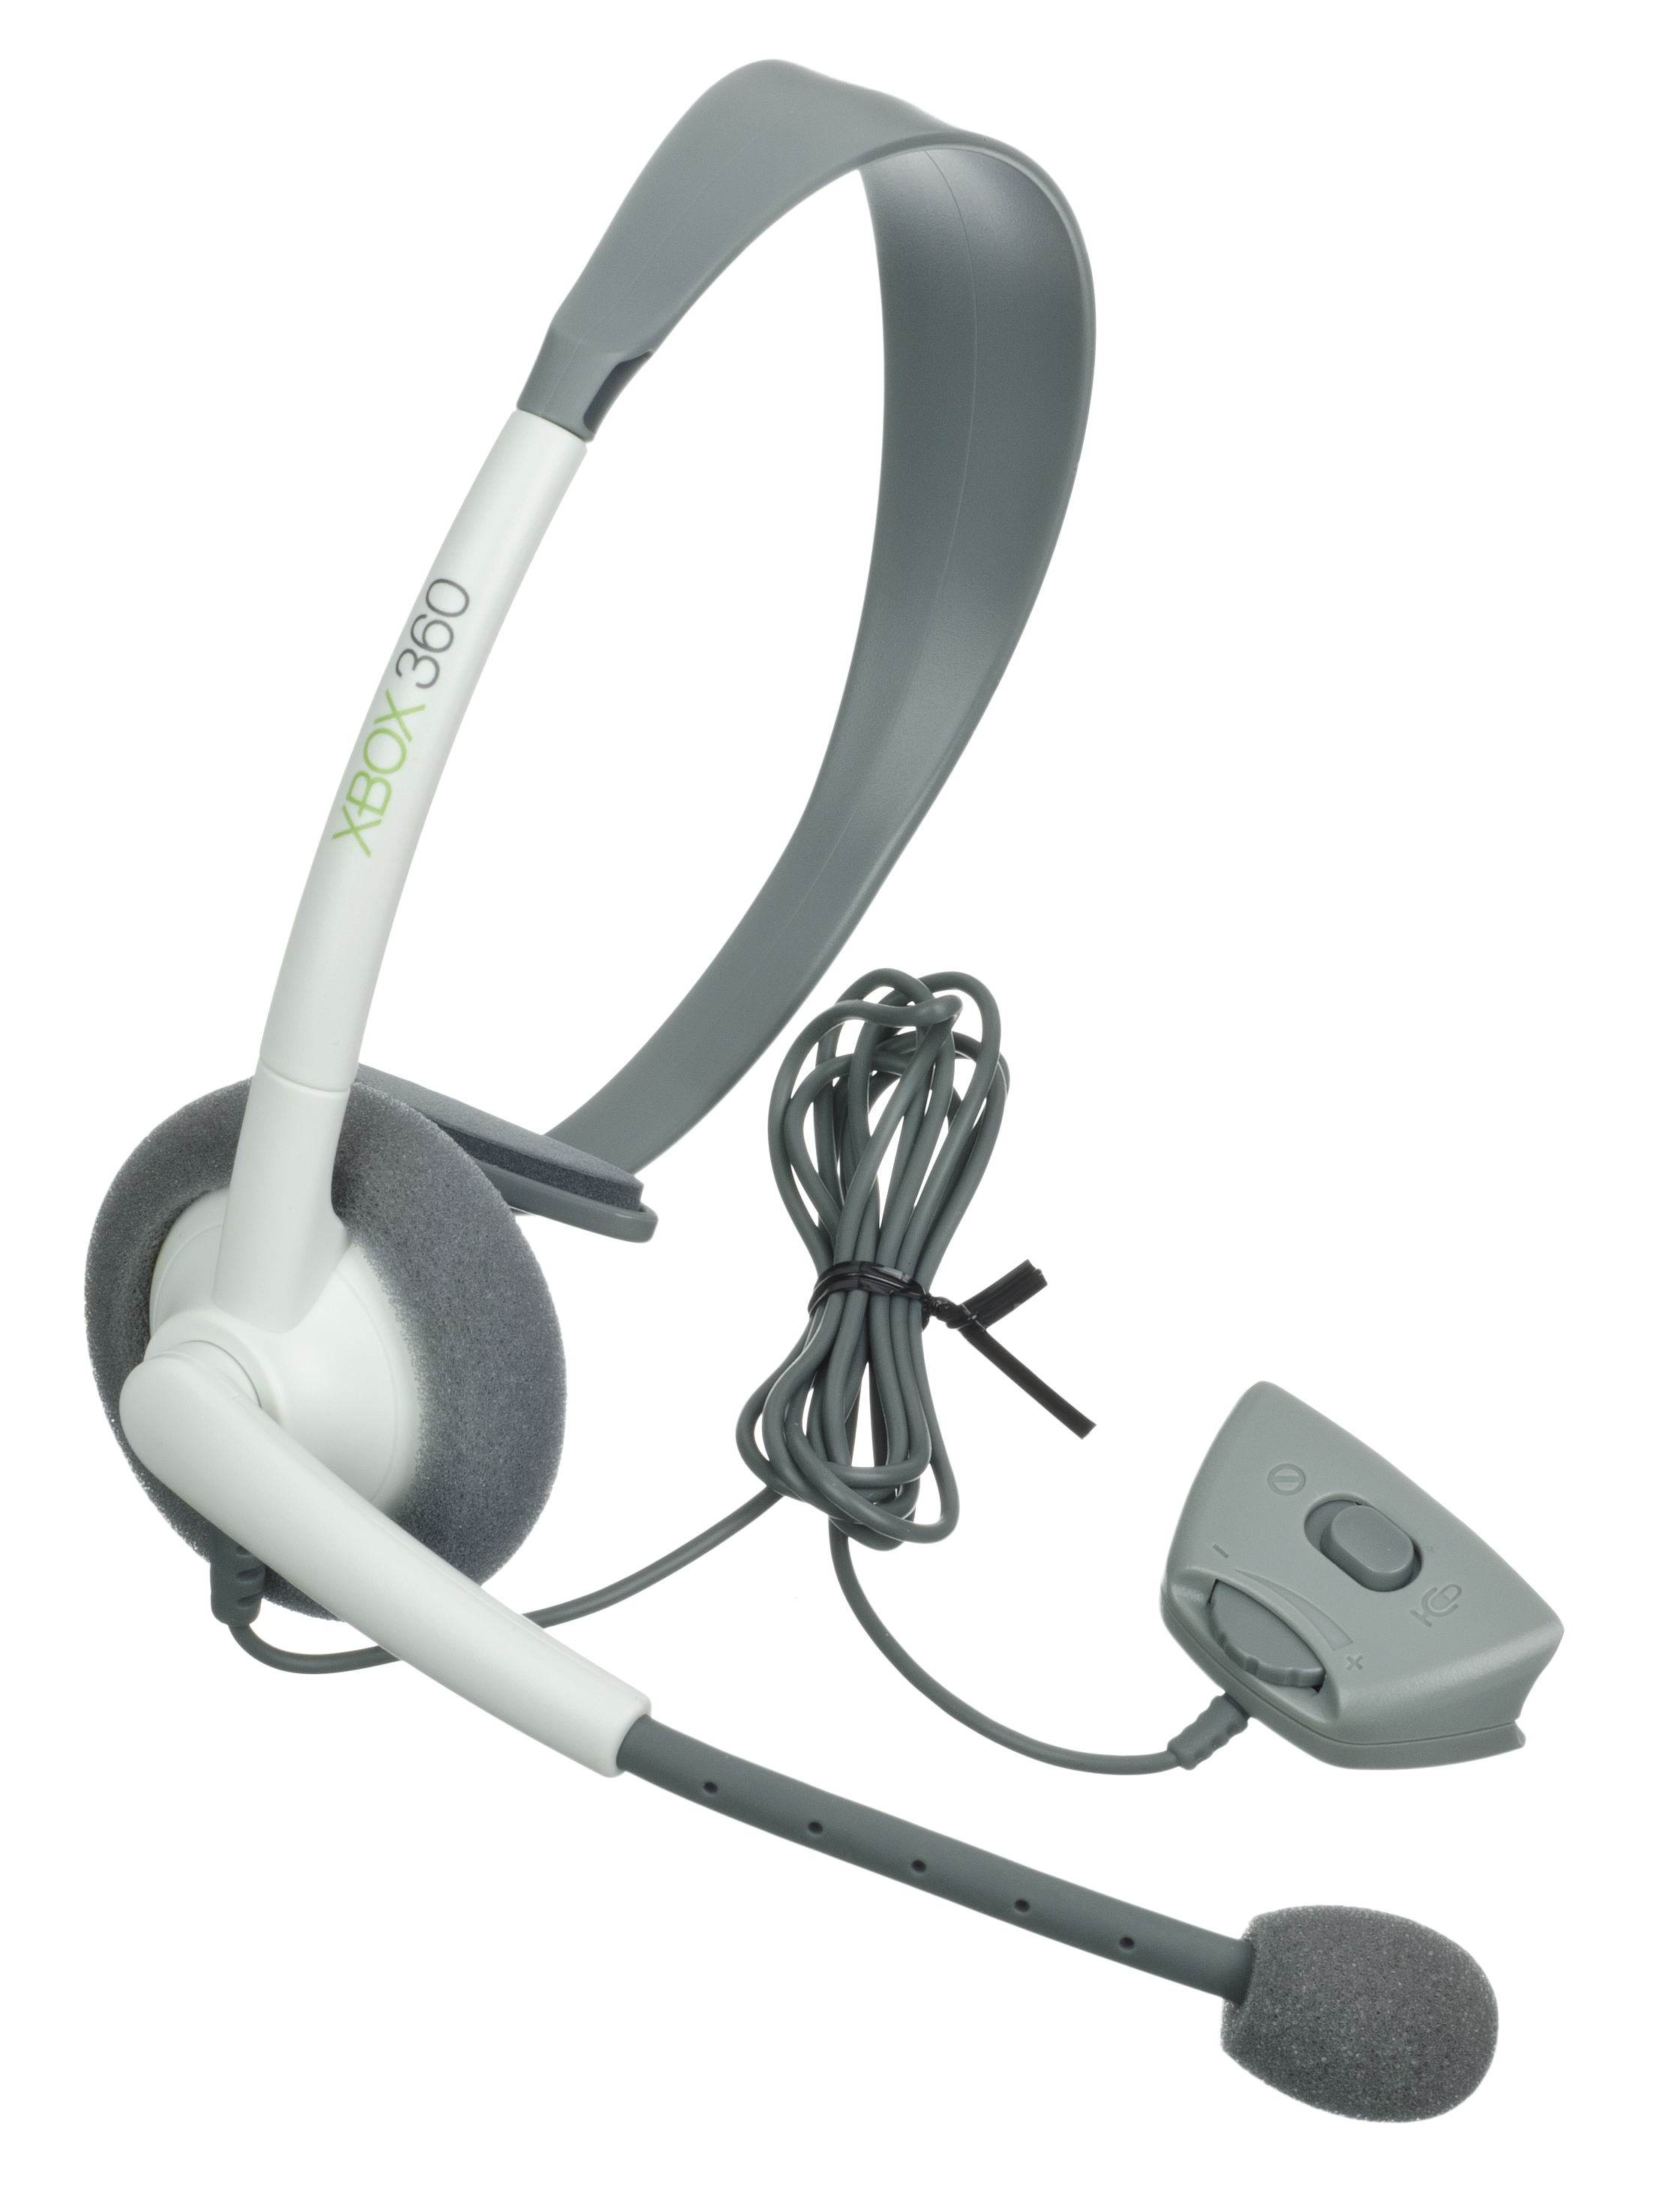 File:Xbox-360-Headset-White.jpg - Wikimedia Commons